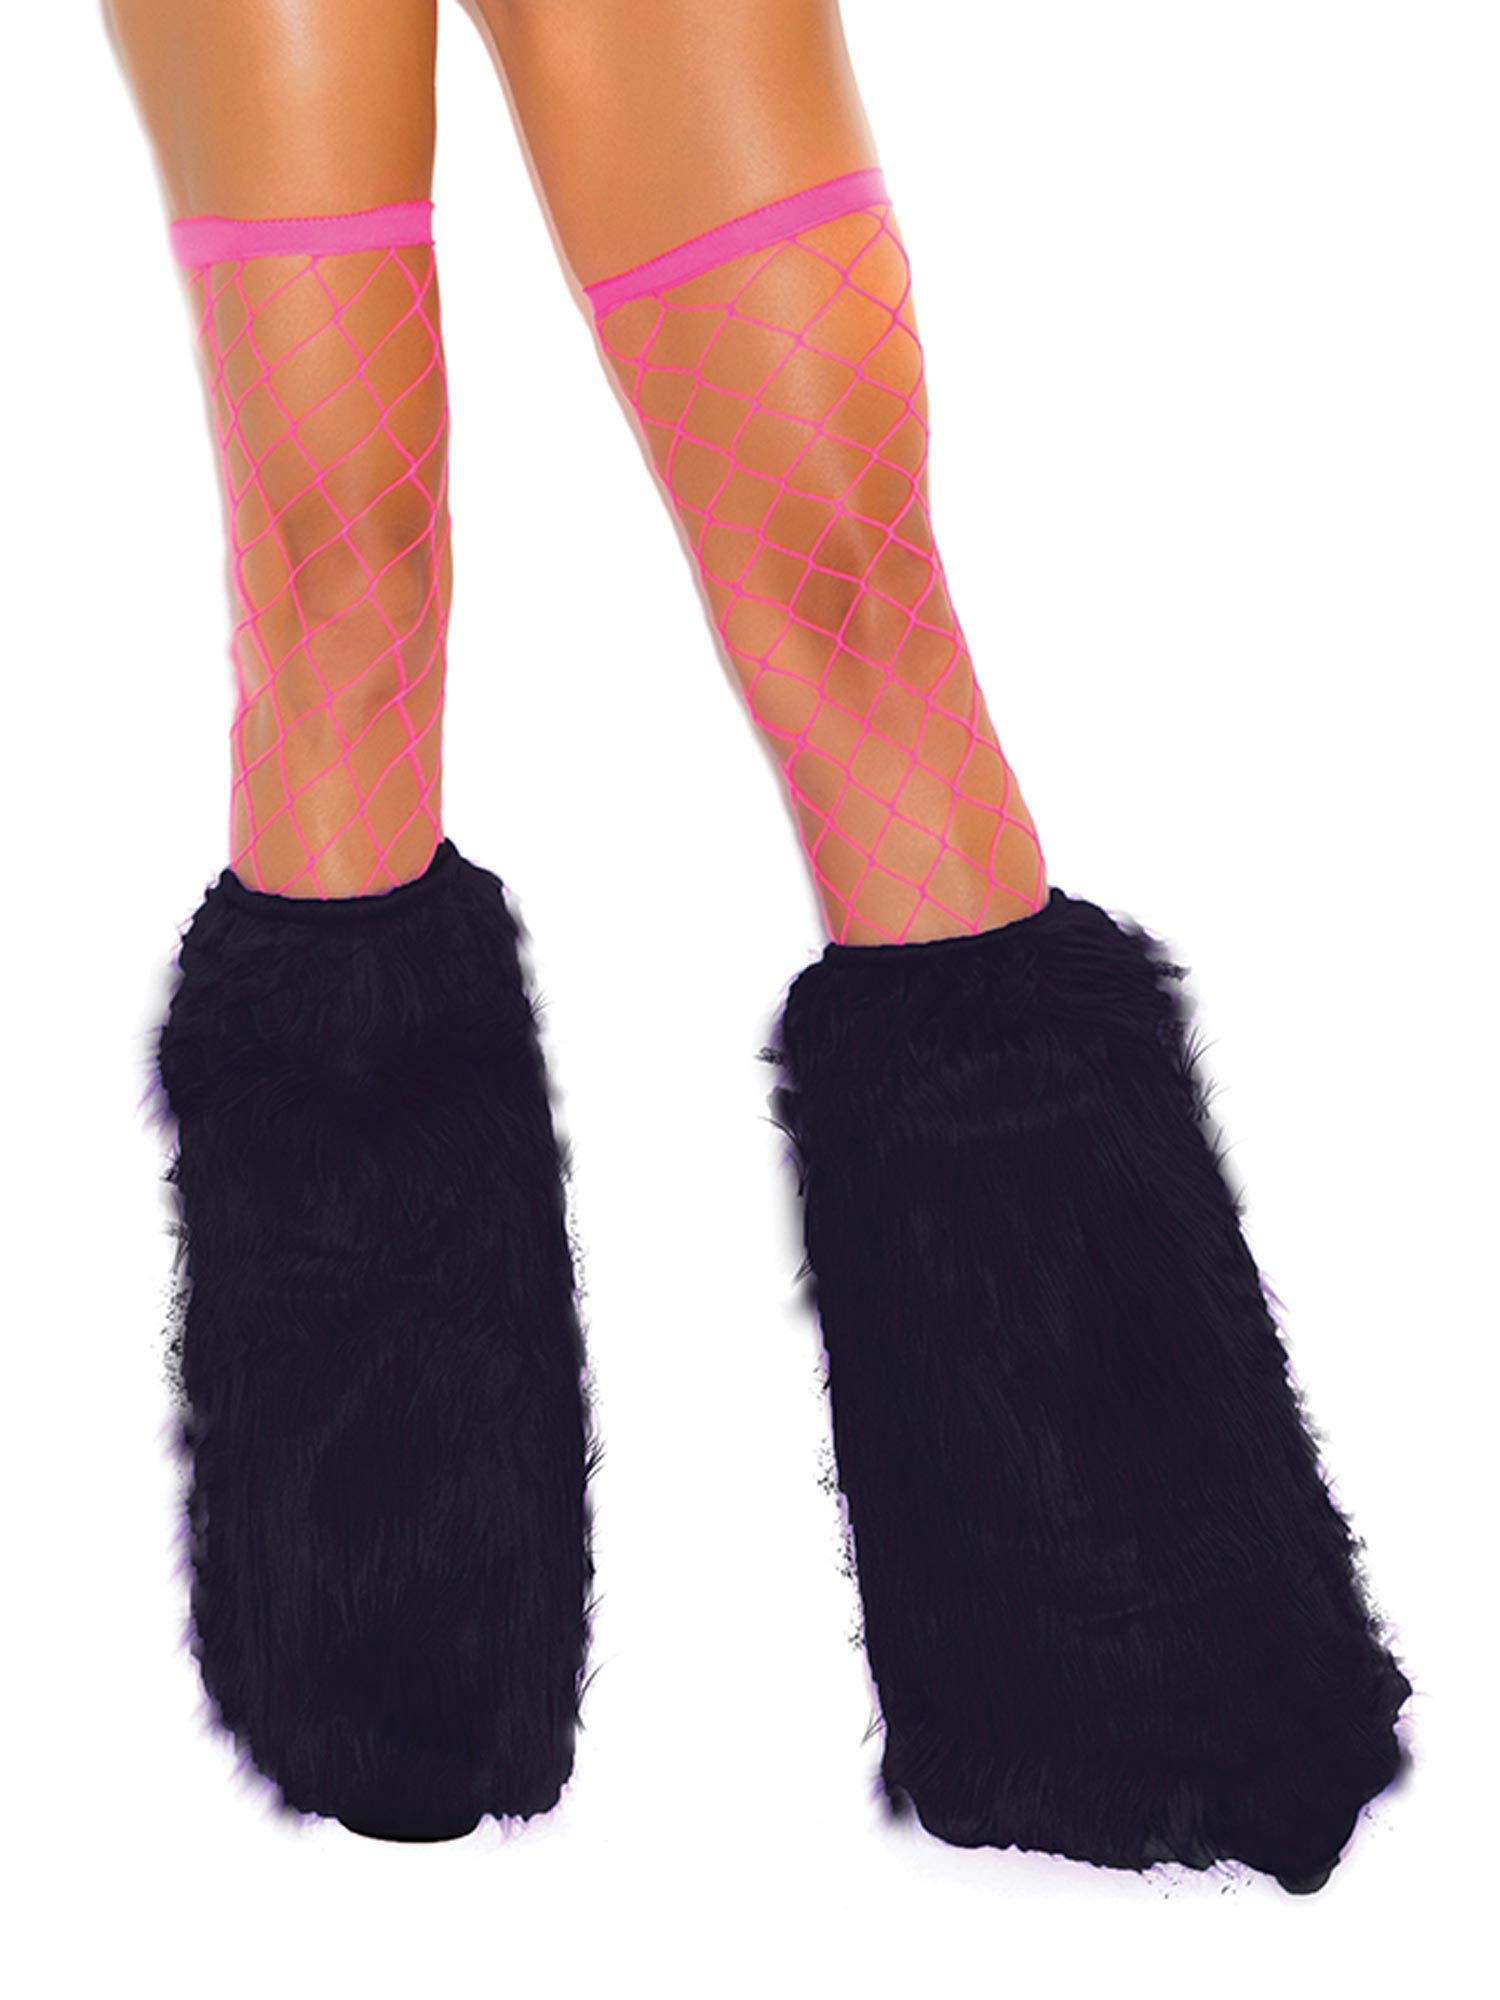 Elegant Moments Women's Knee High Fur Boot Covers Black One Size Fits Most